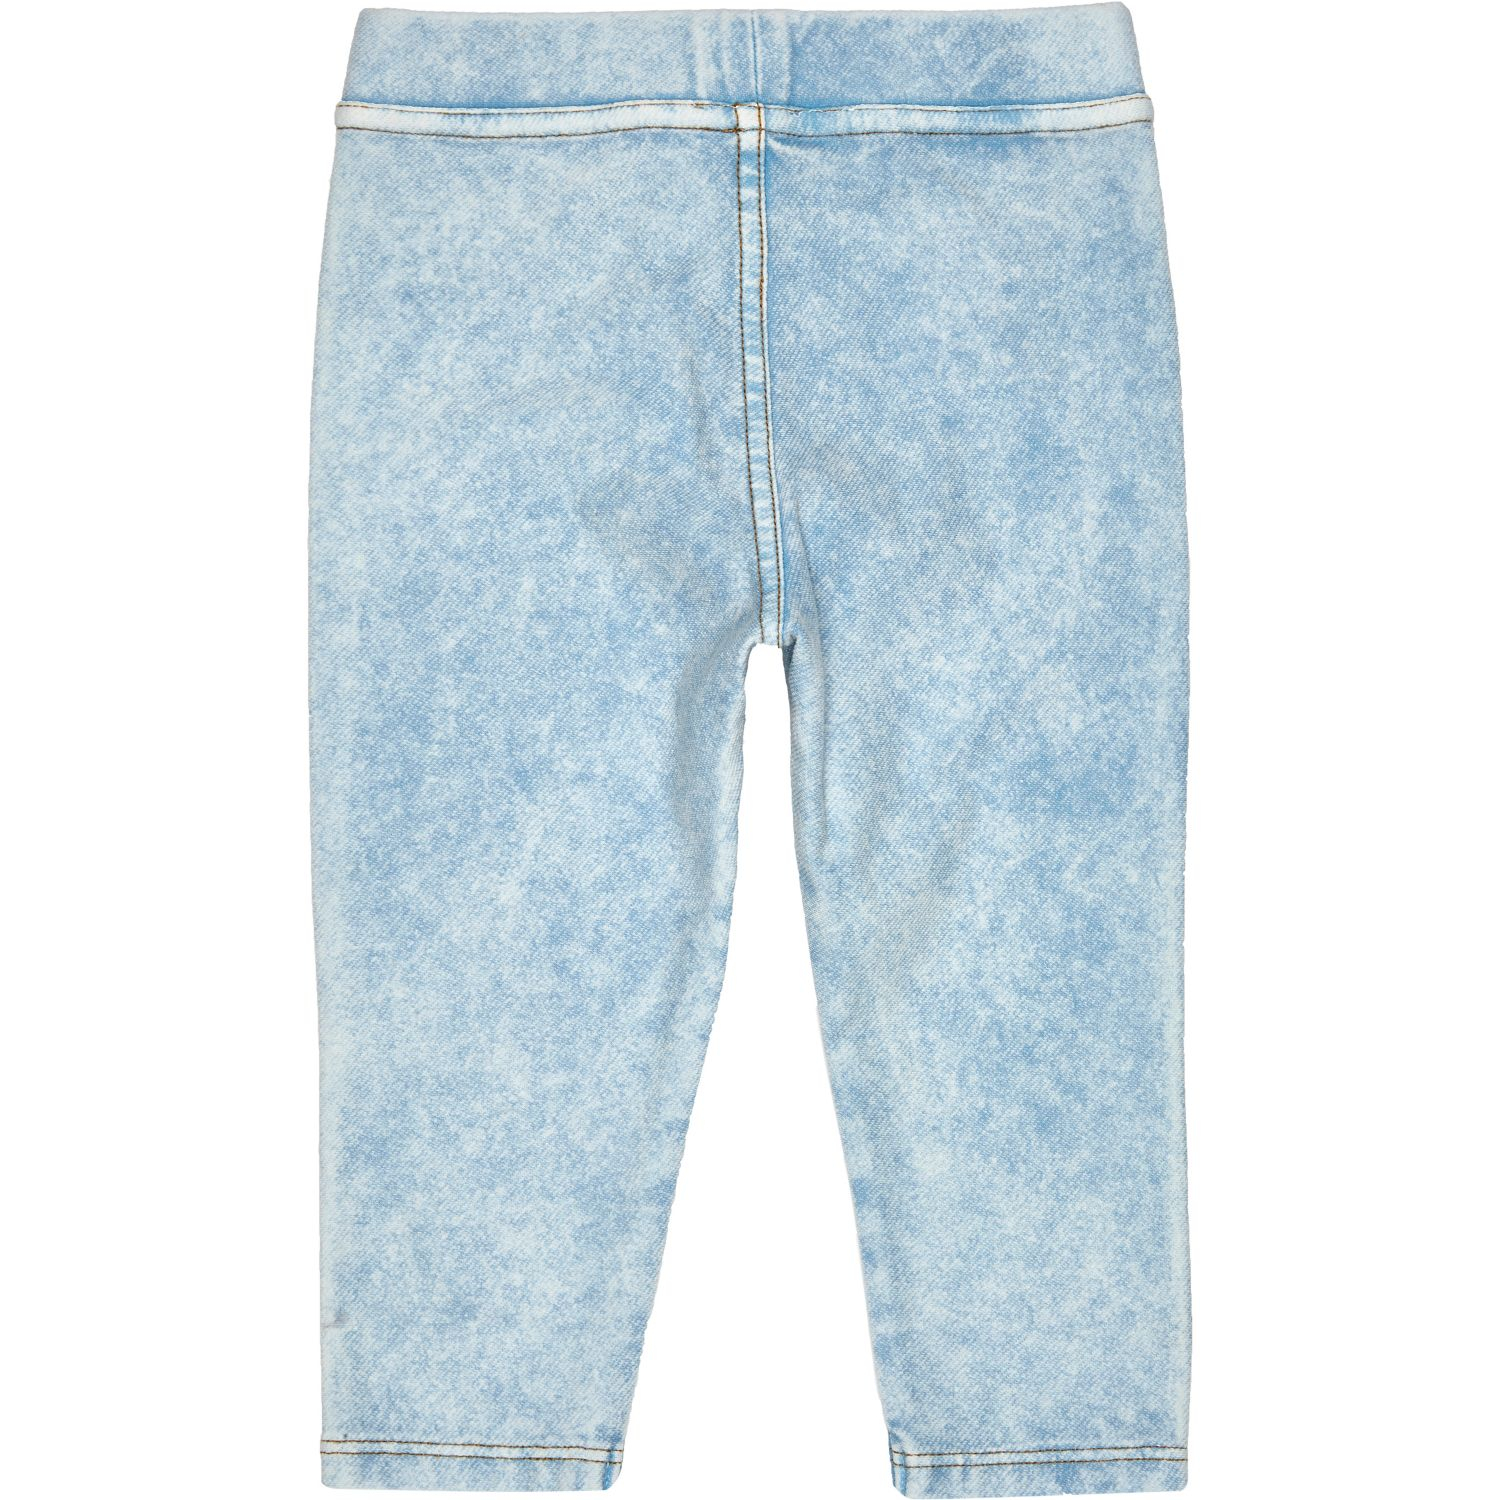 Find great deals on eBay for light blue jeggings. Shop with confidence.